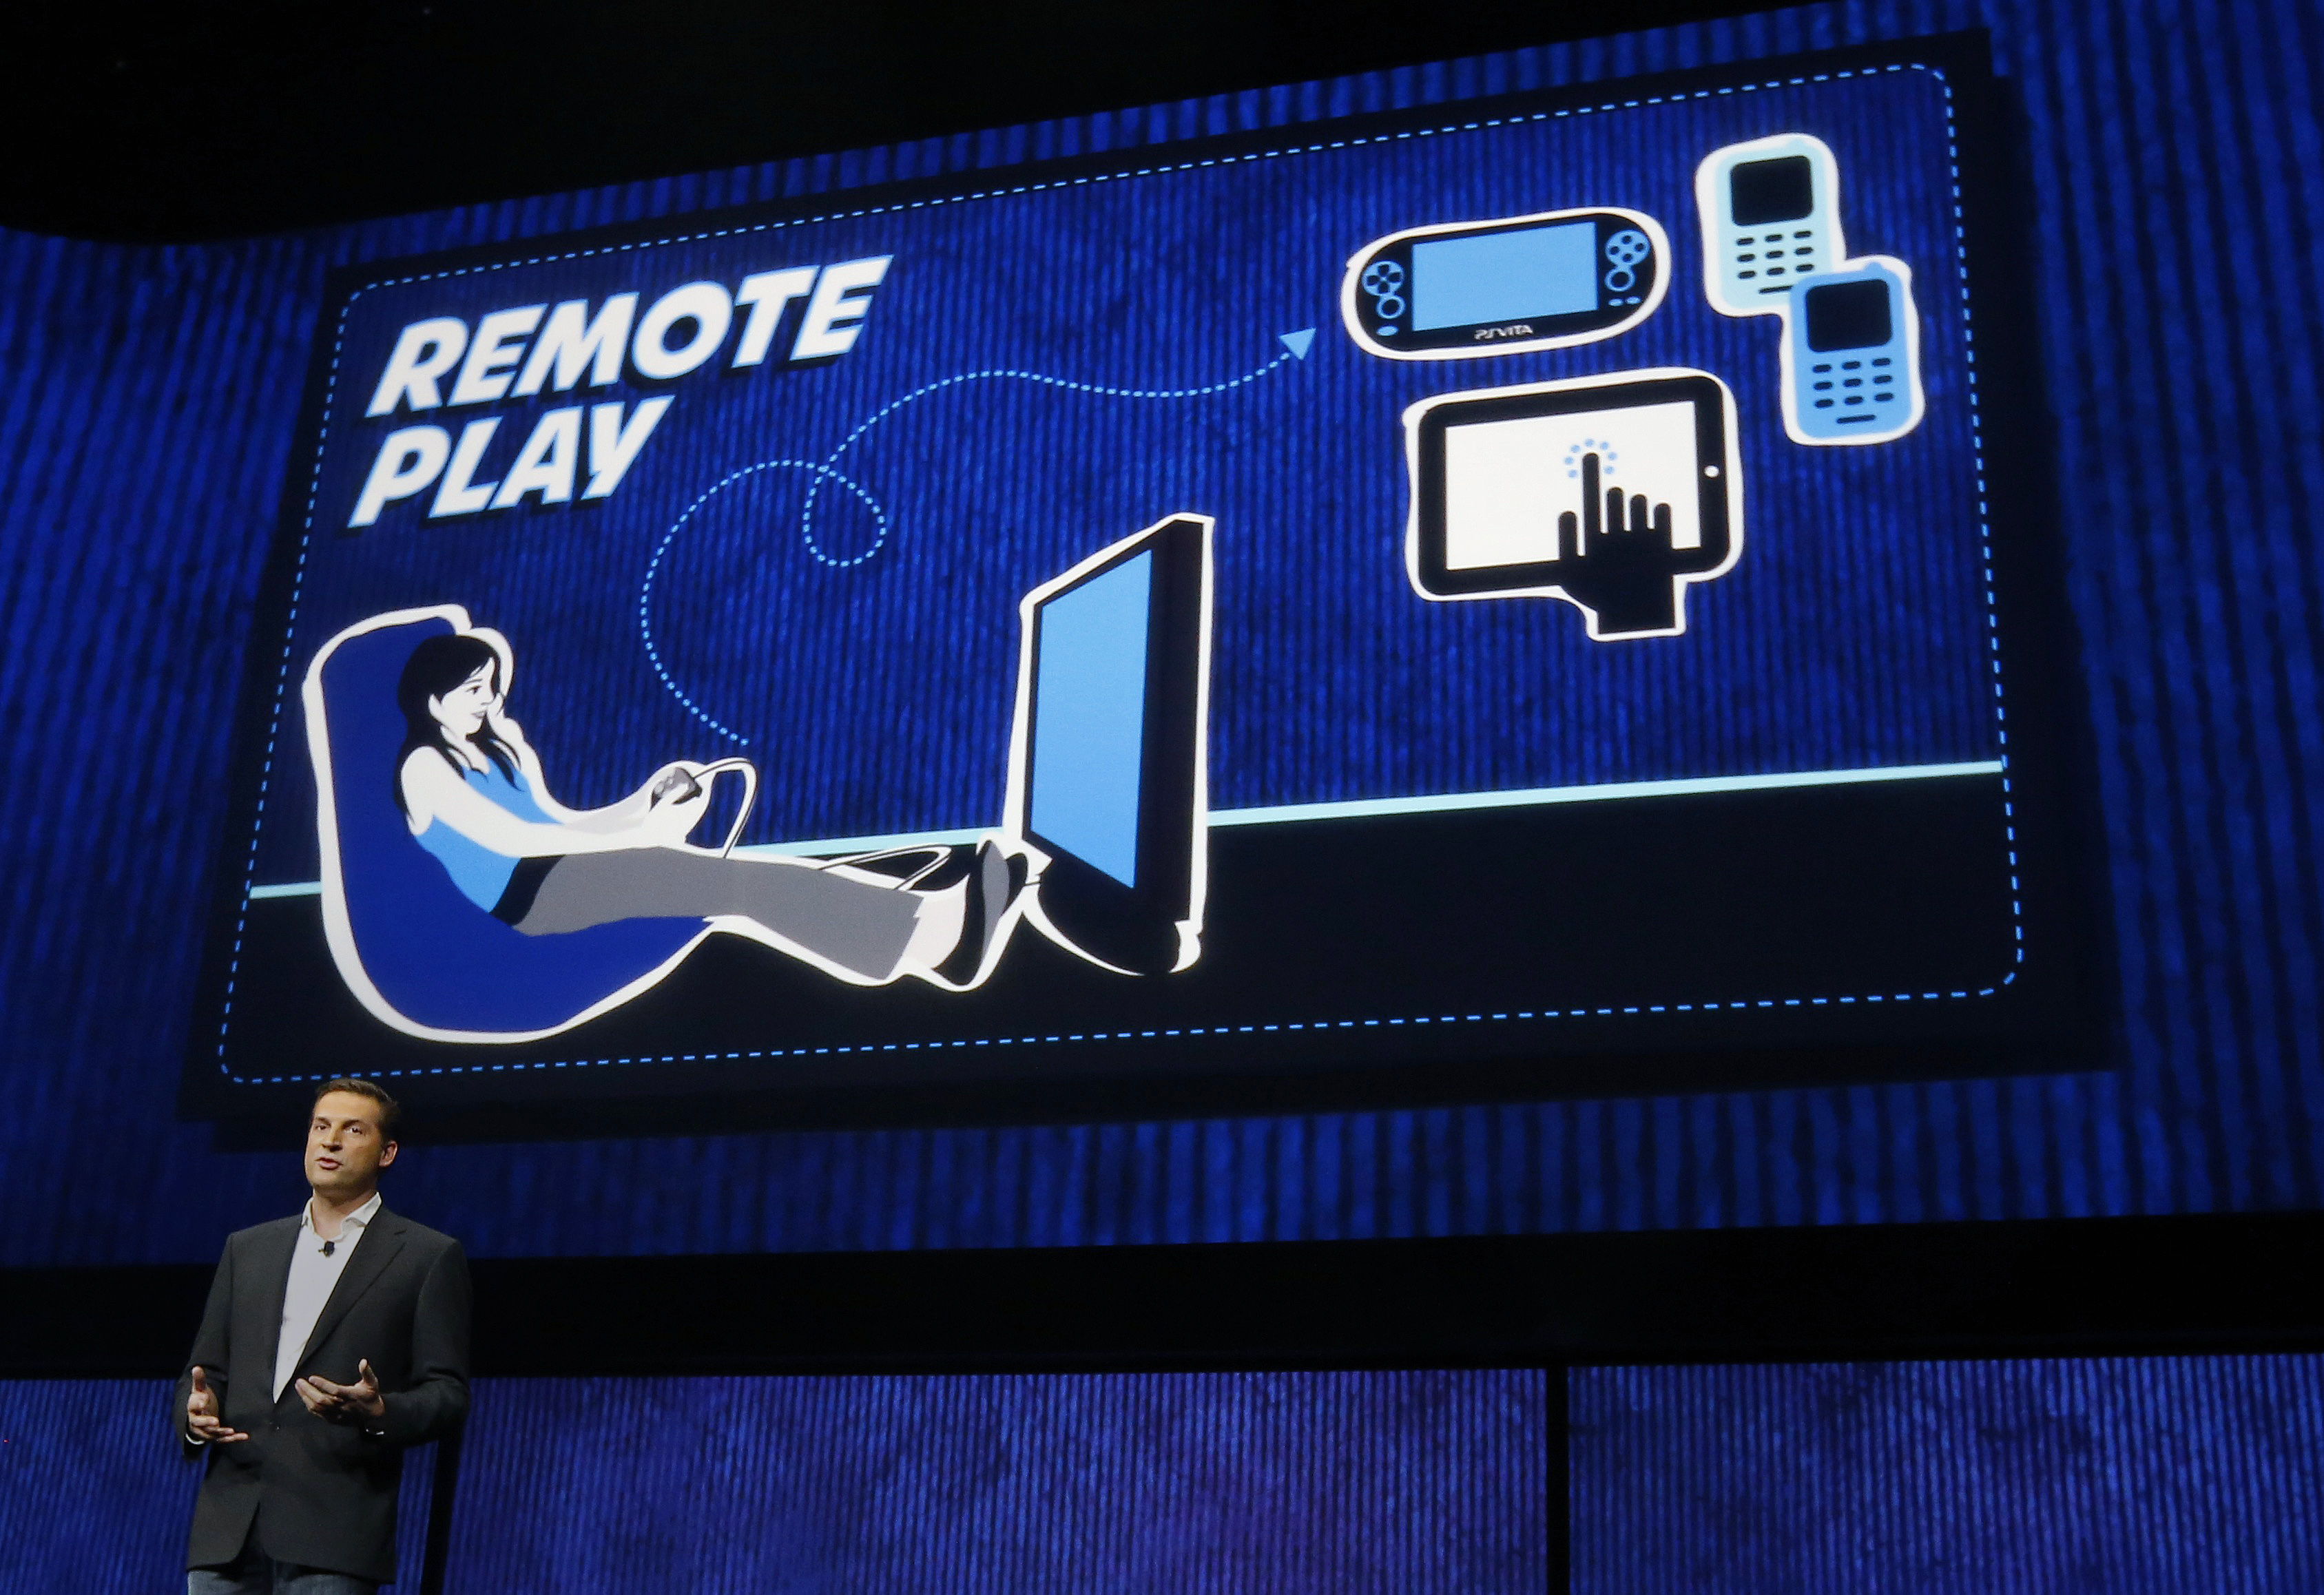 PS4 Remote Play feature coming to PC and Mac